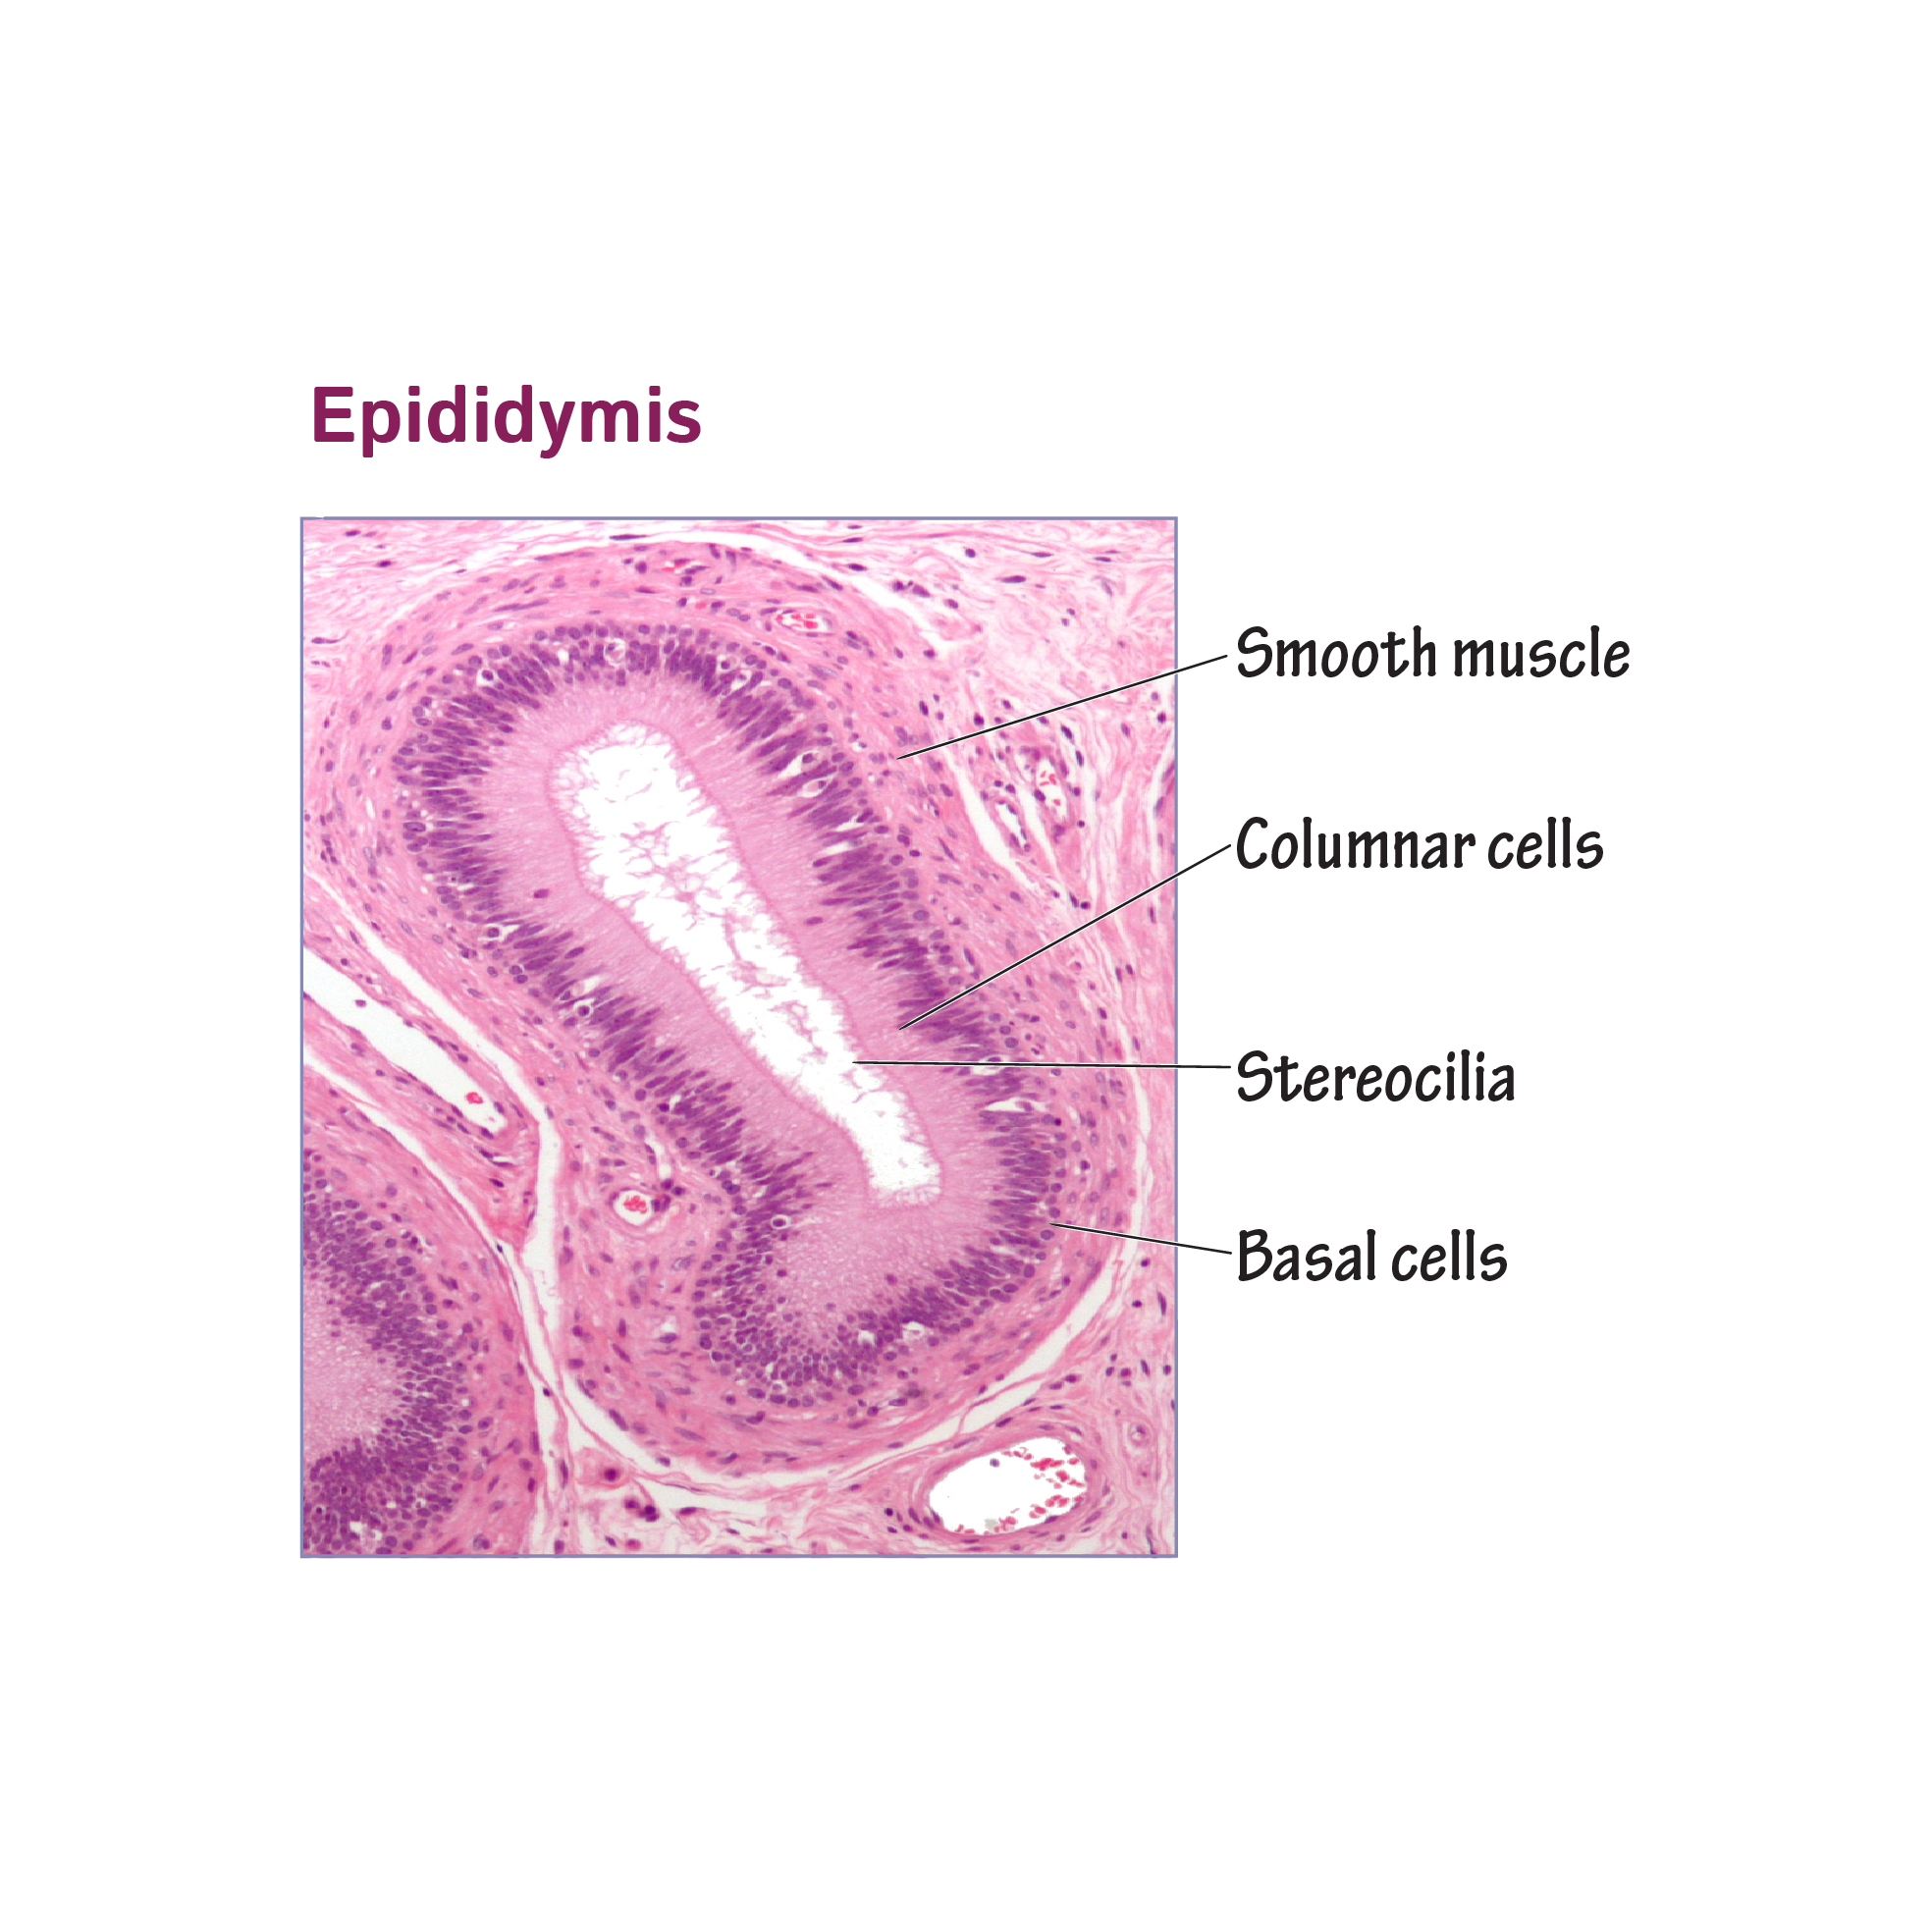 Histology Glossary Histology Epididymis Draw It To Know It